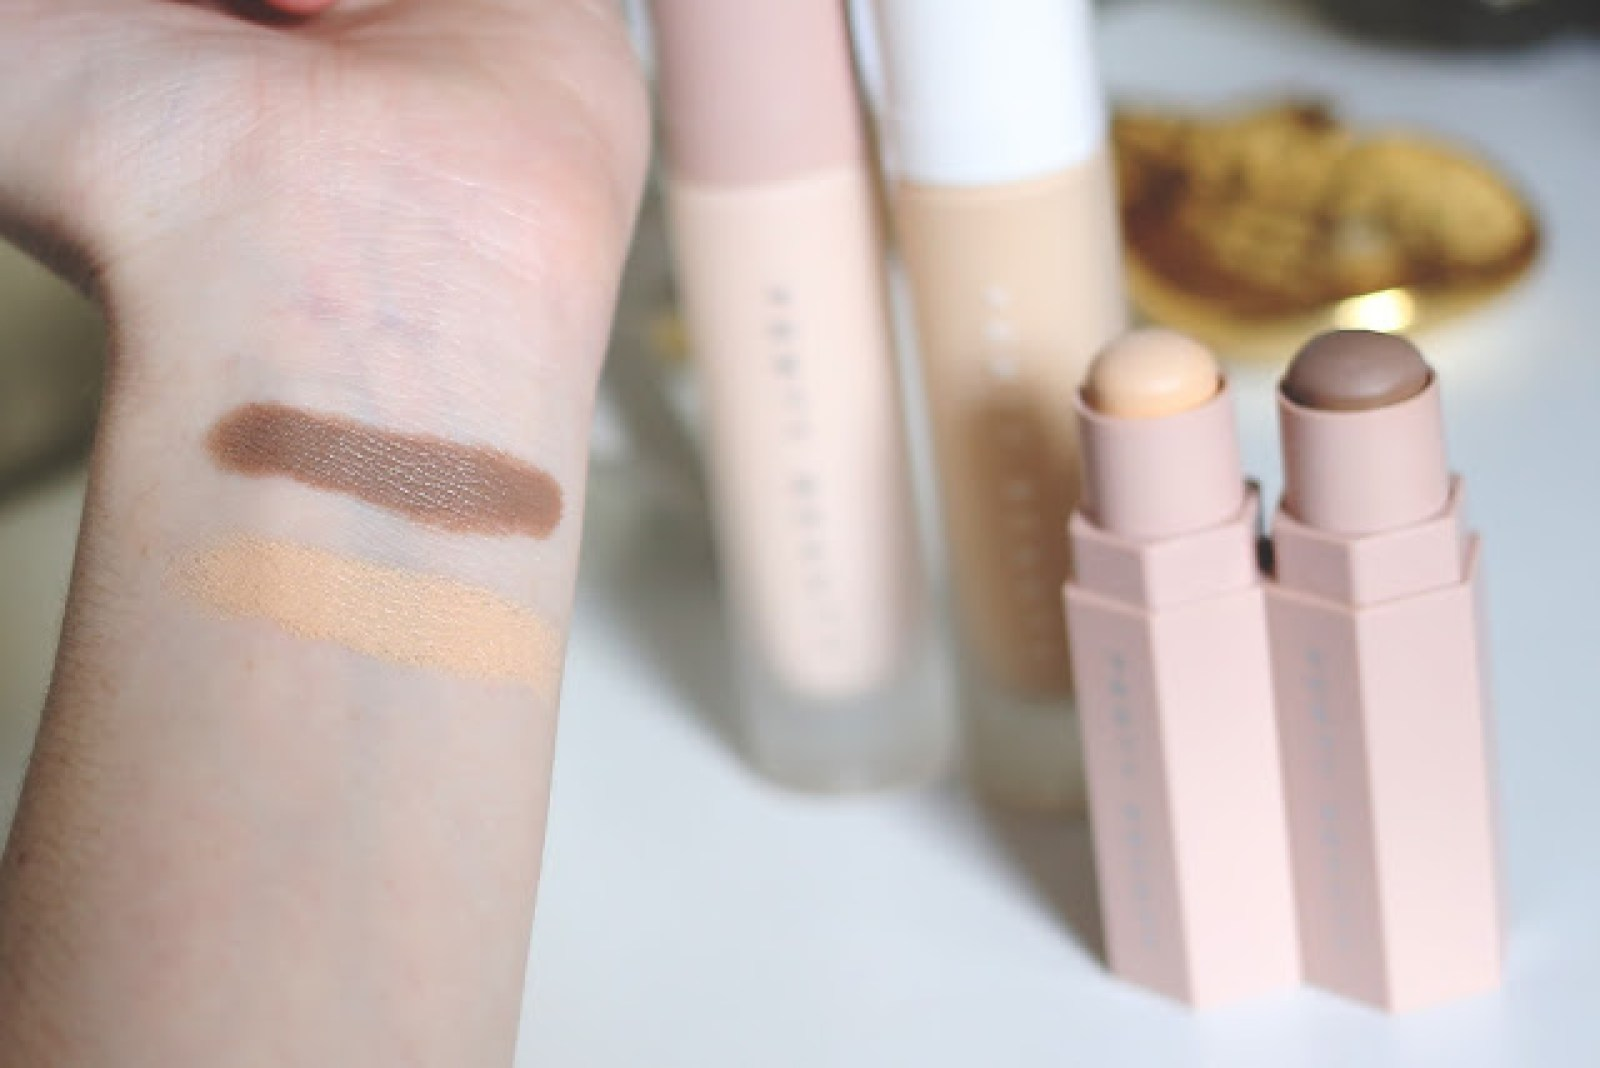 fenty beauty amber porcelain match stixs on pale nc15 skin